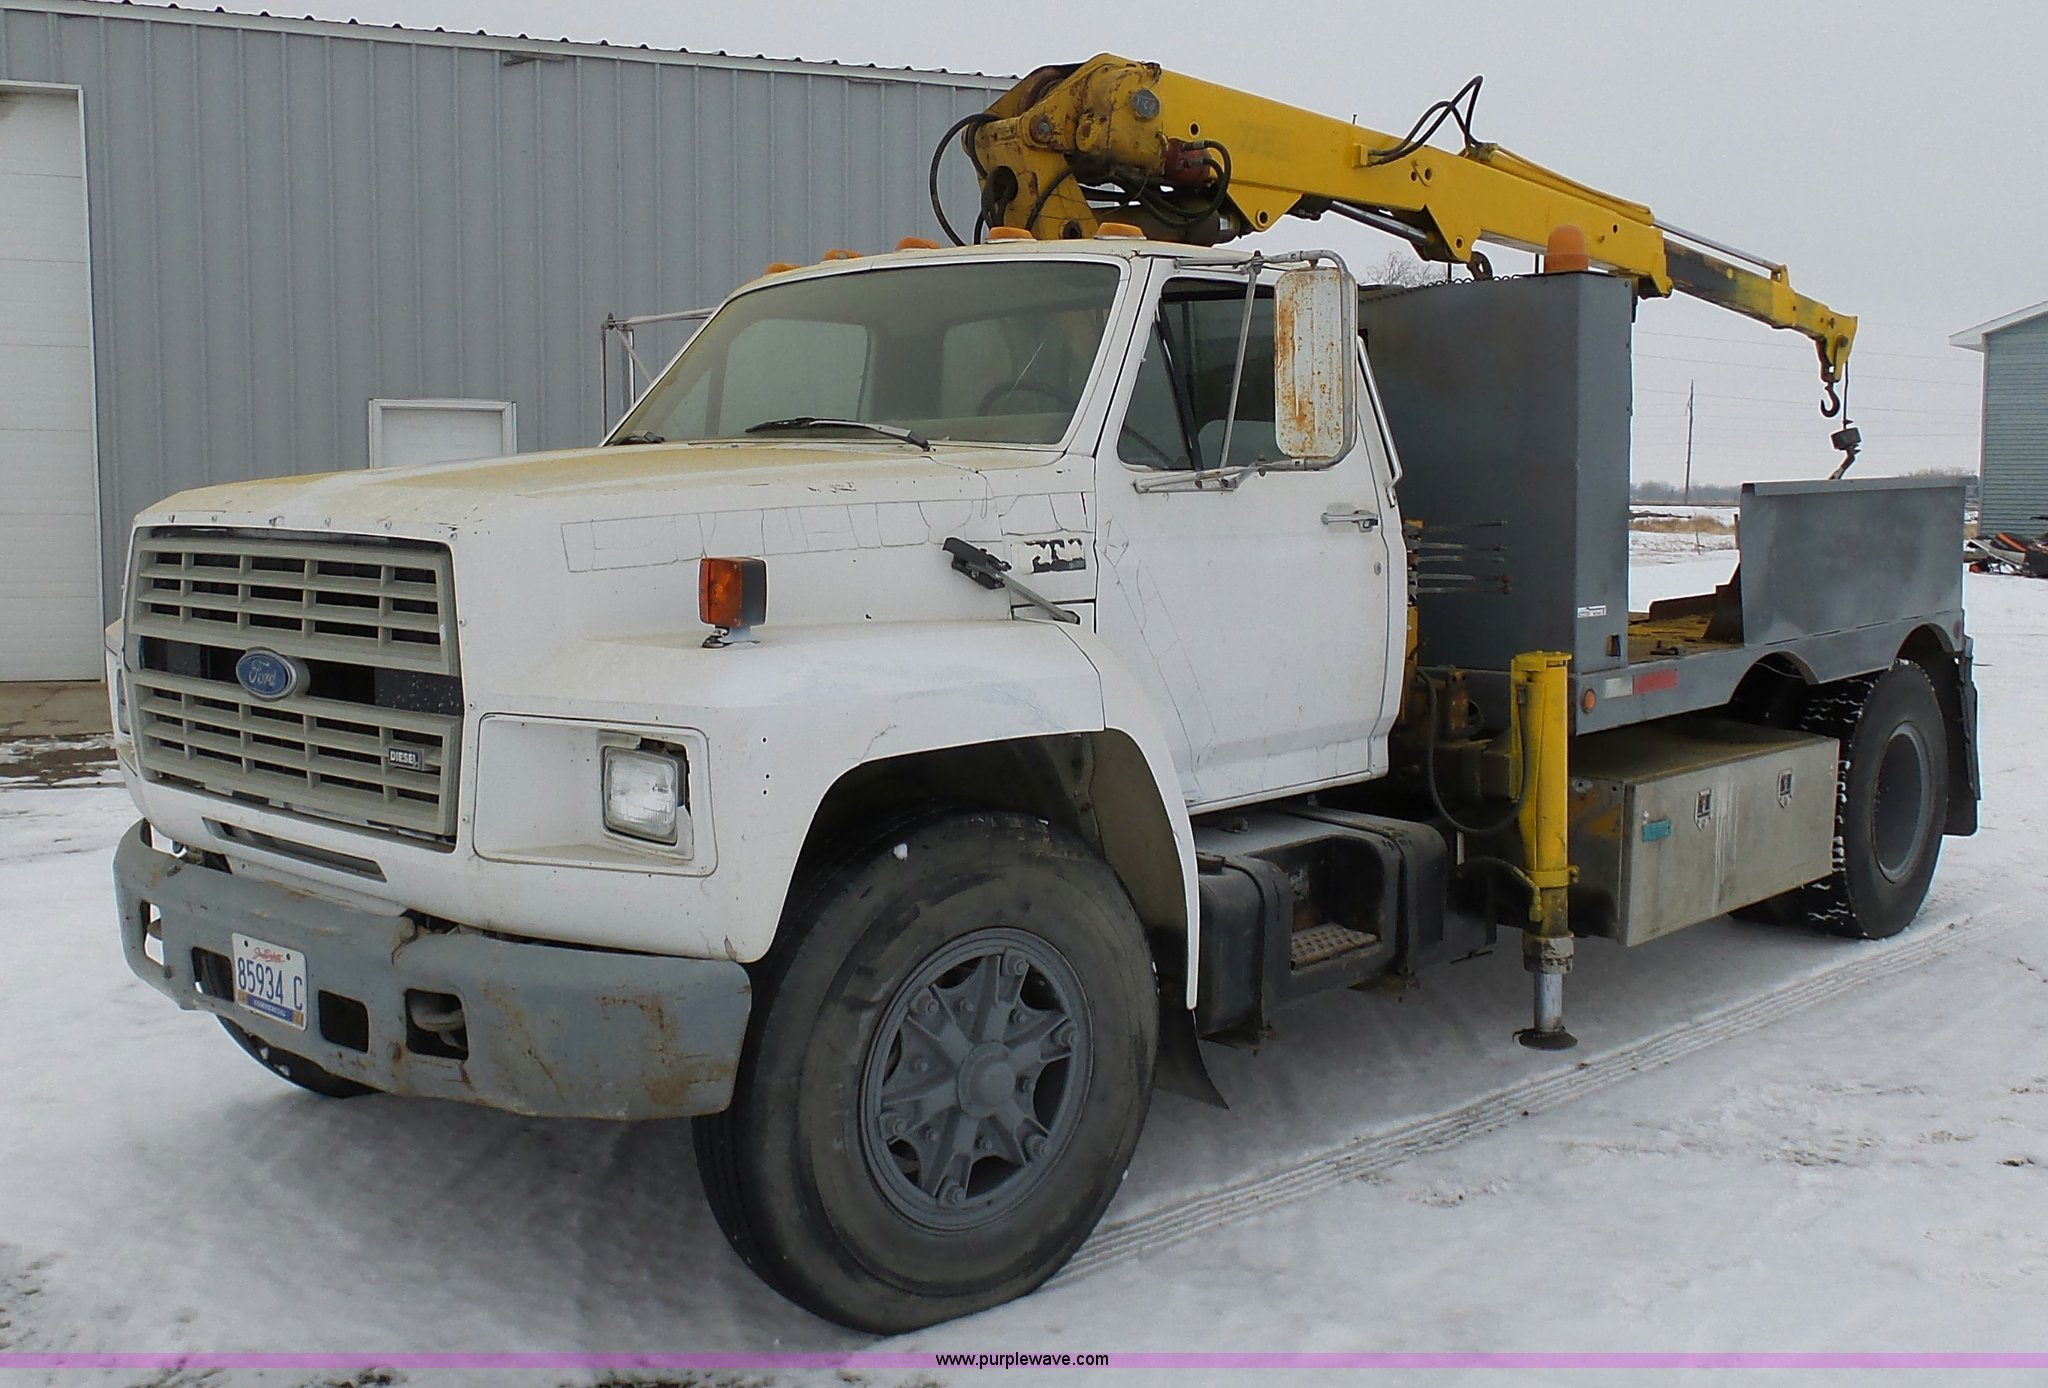 BH9440 image for item BH9440 1988 Ford F700 service truck ...